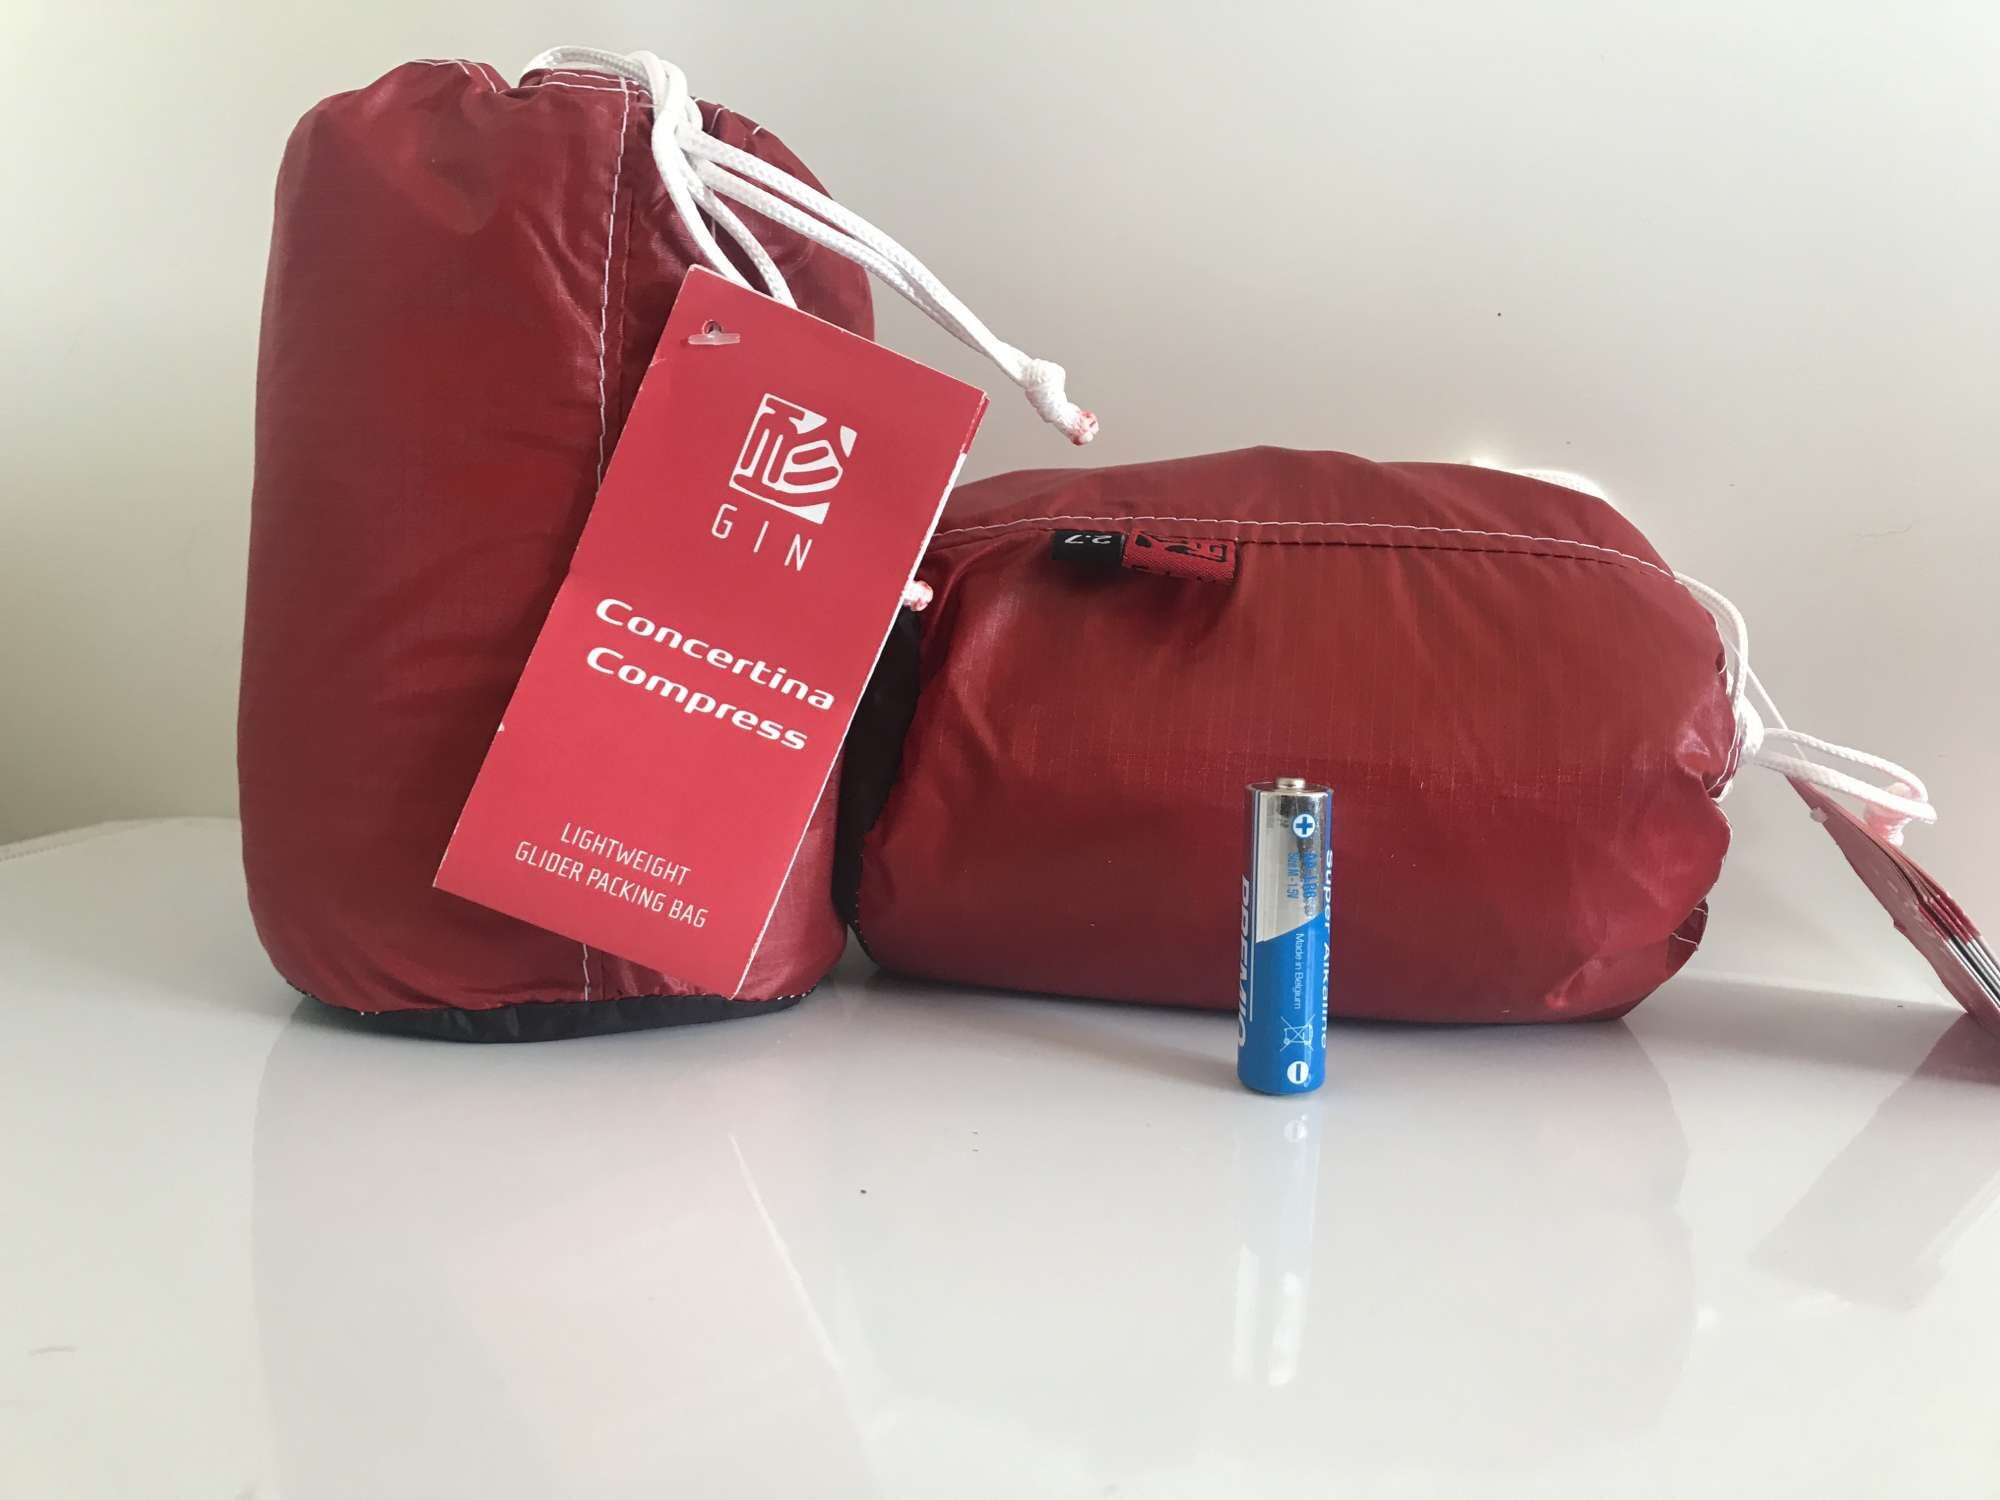 Seriously small bags from Gin now available to buy from FlySpain